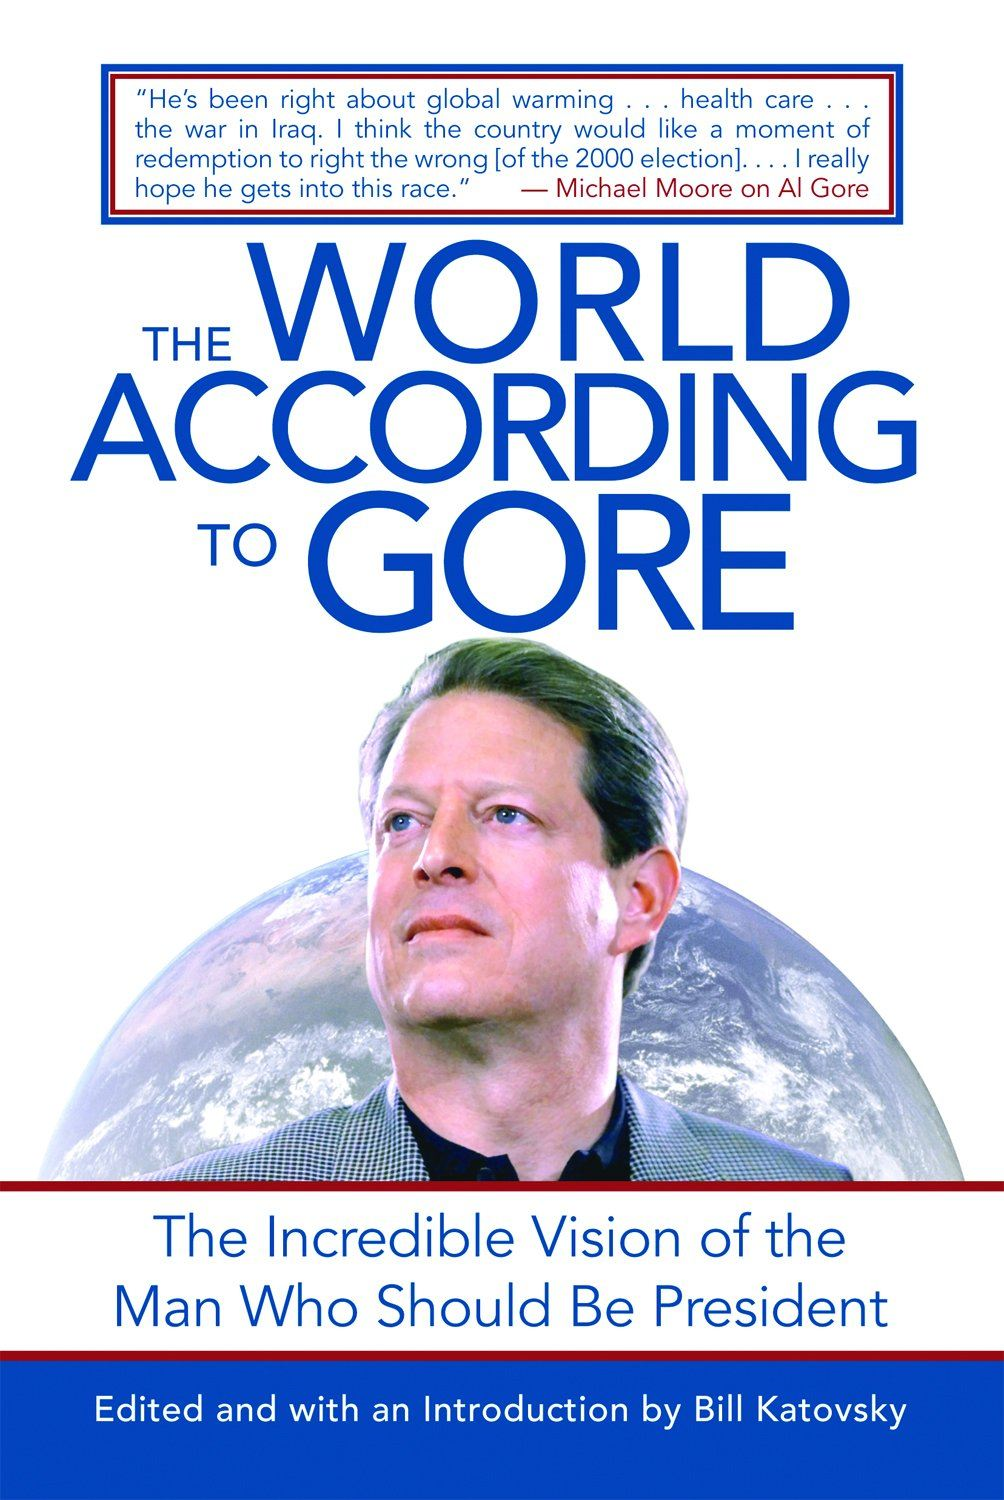 The World According To Gore: The Incredible Vision of the Man Who Should Be President By: Edited and Introduced by Bill Katovsky